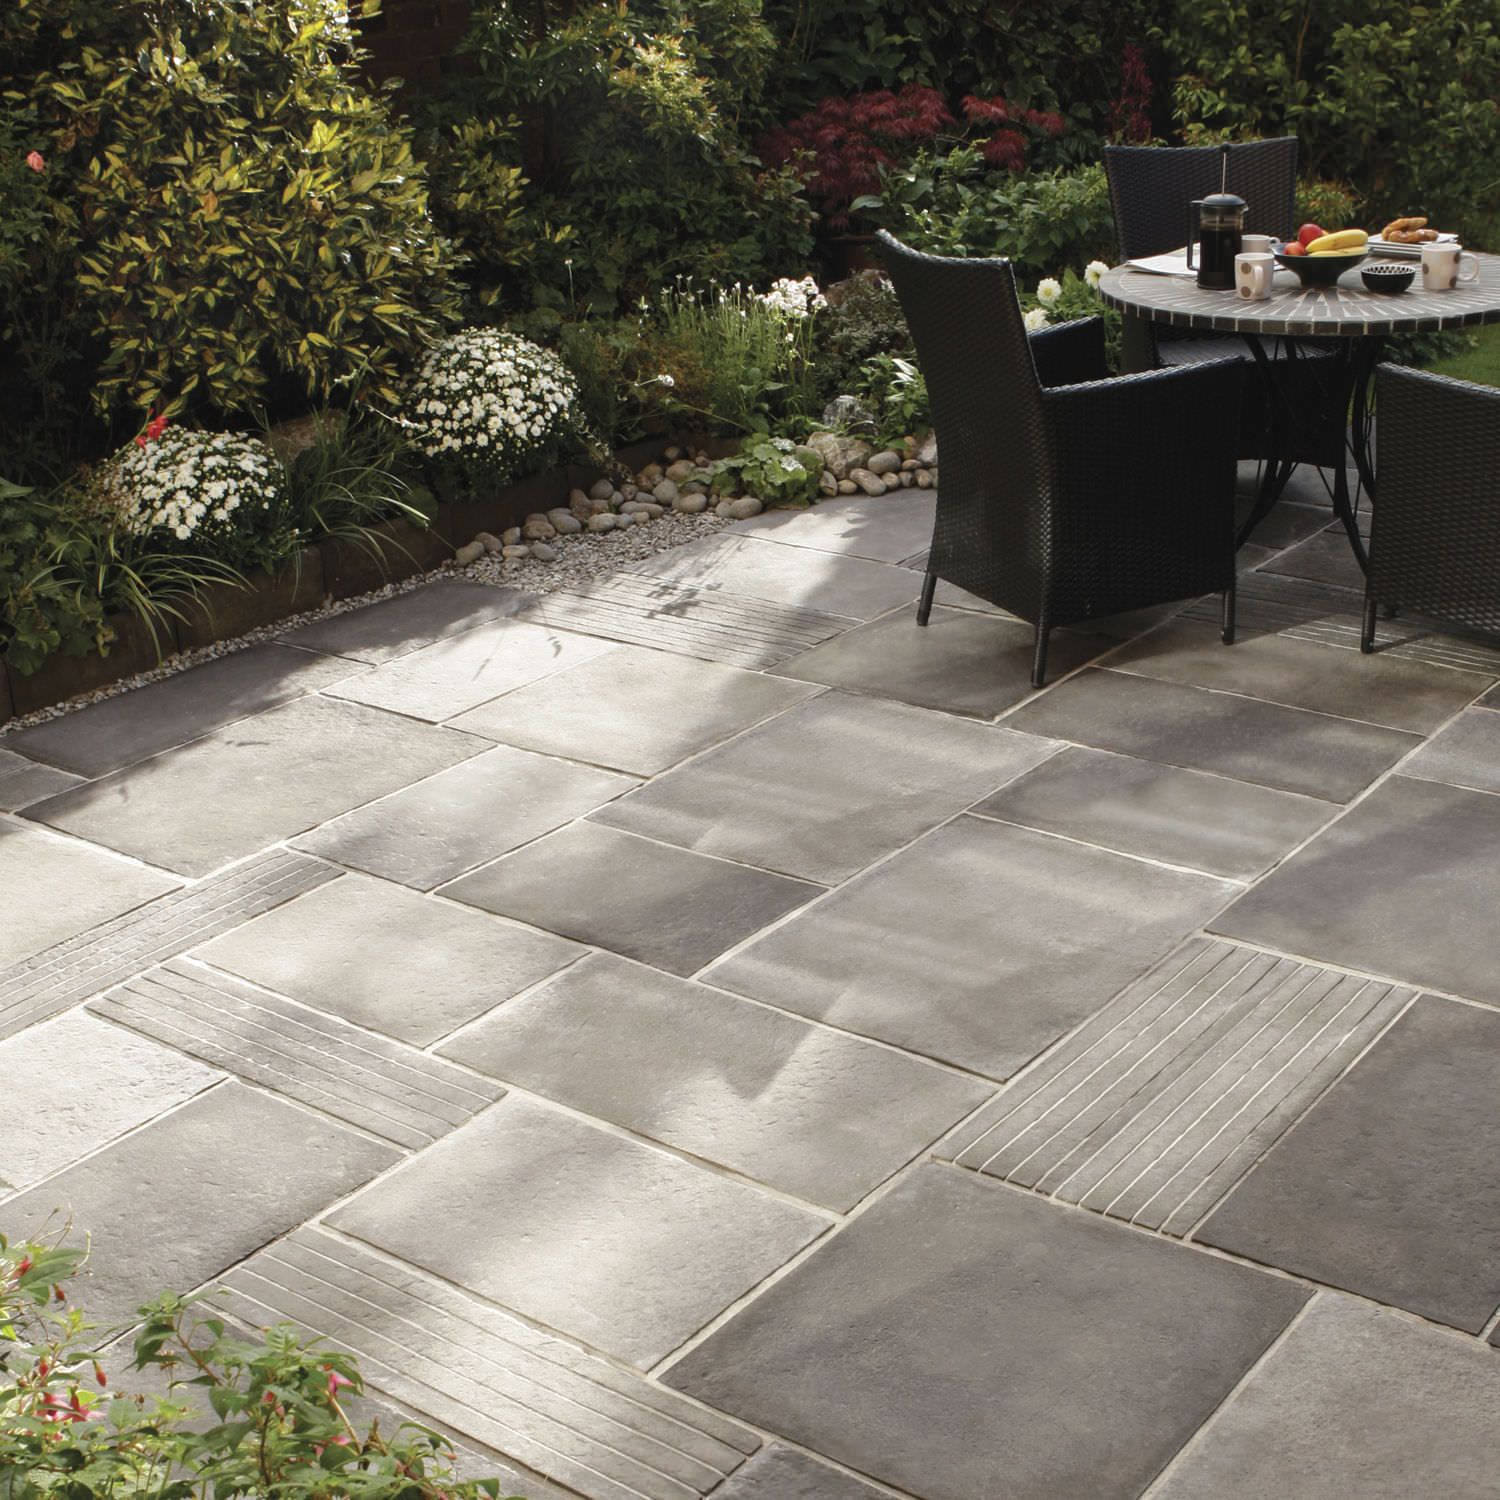 Engineered Stone Paving Tile For Outdoor Floors CLOISTERS BRADSTONE Vid